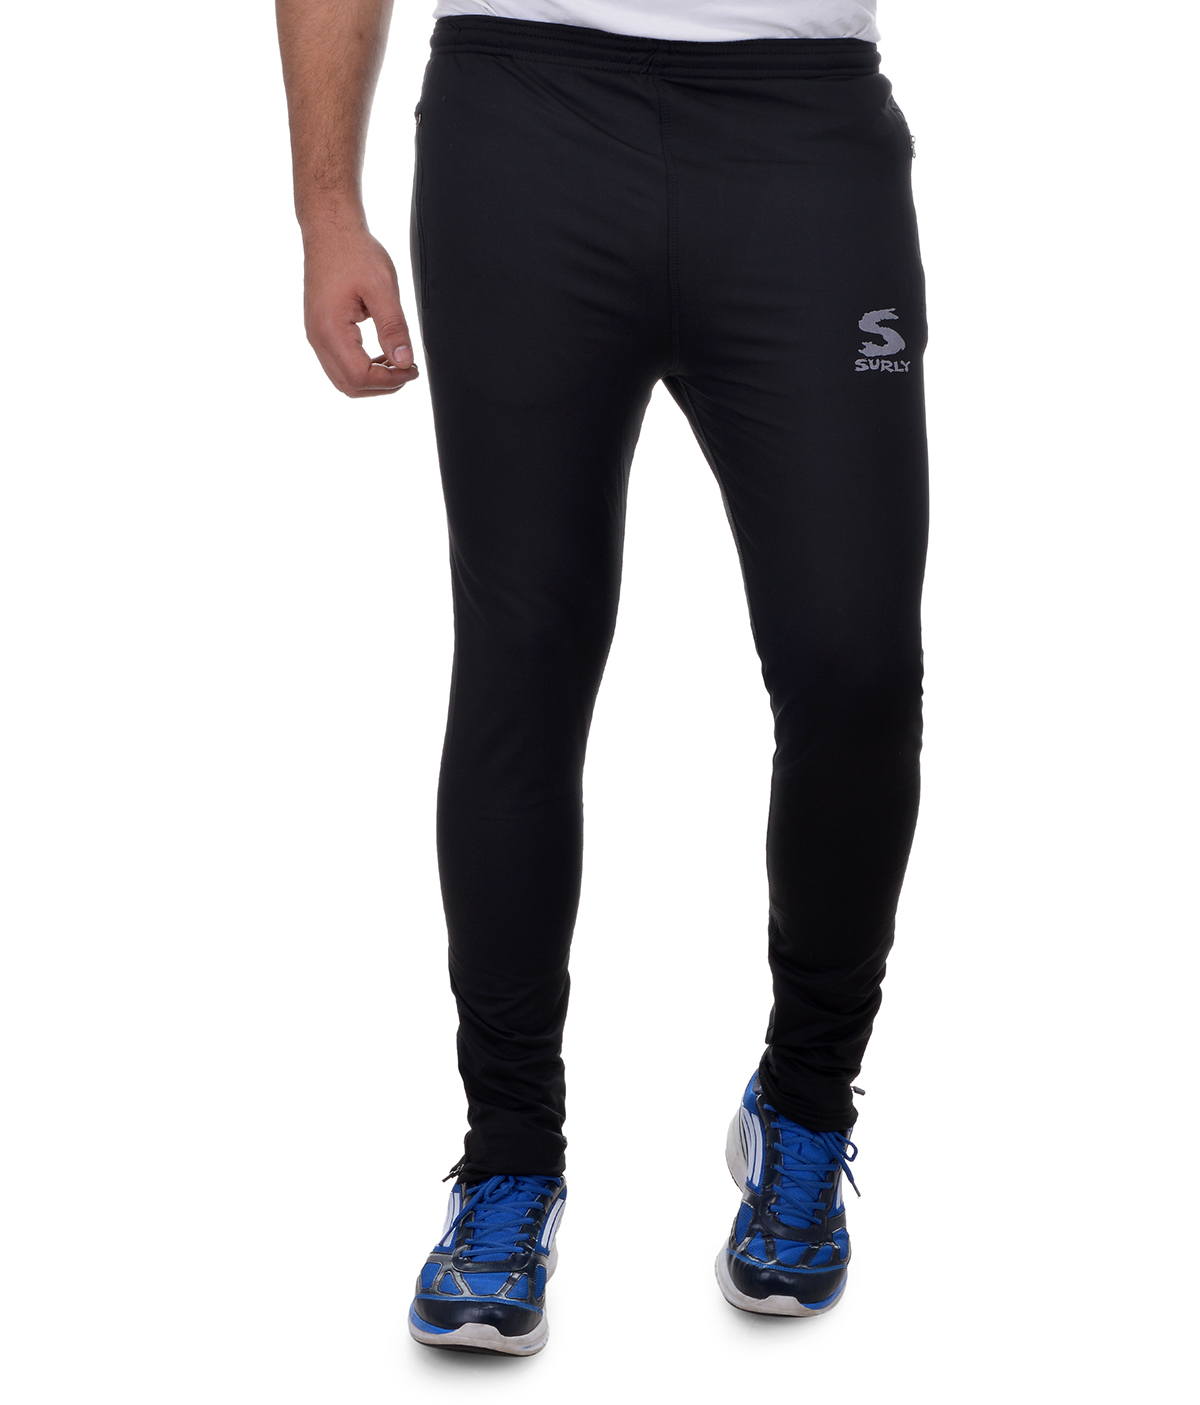 Buy Surly Mens Black Lycra Polyester Track Pant Online In